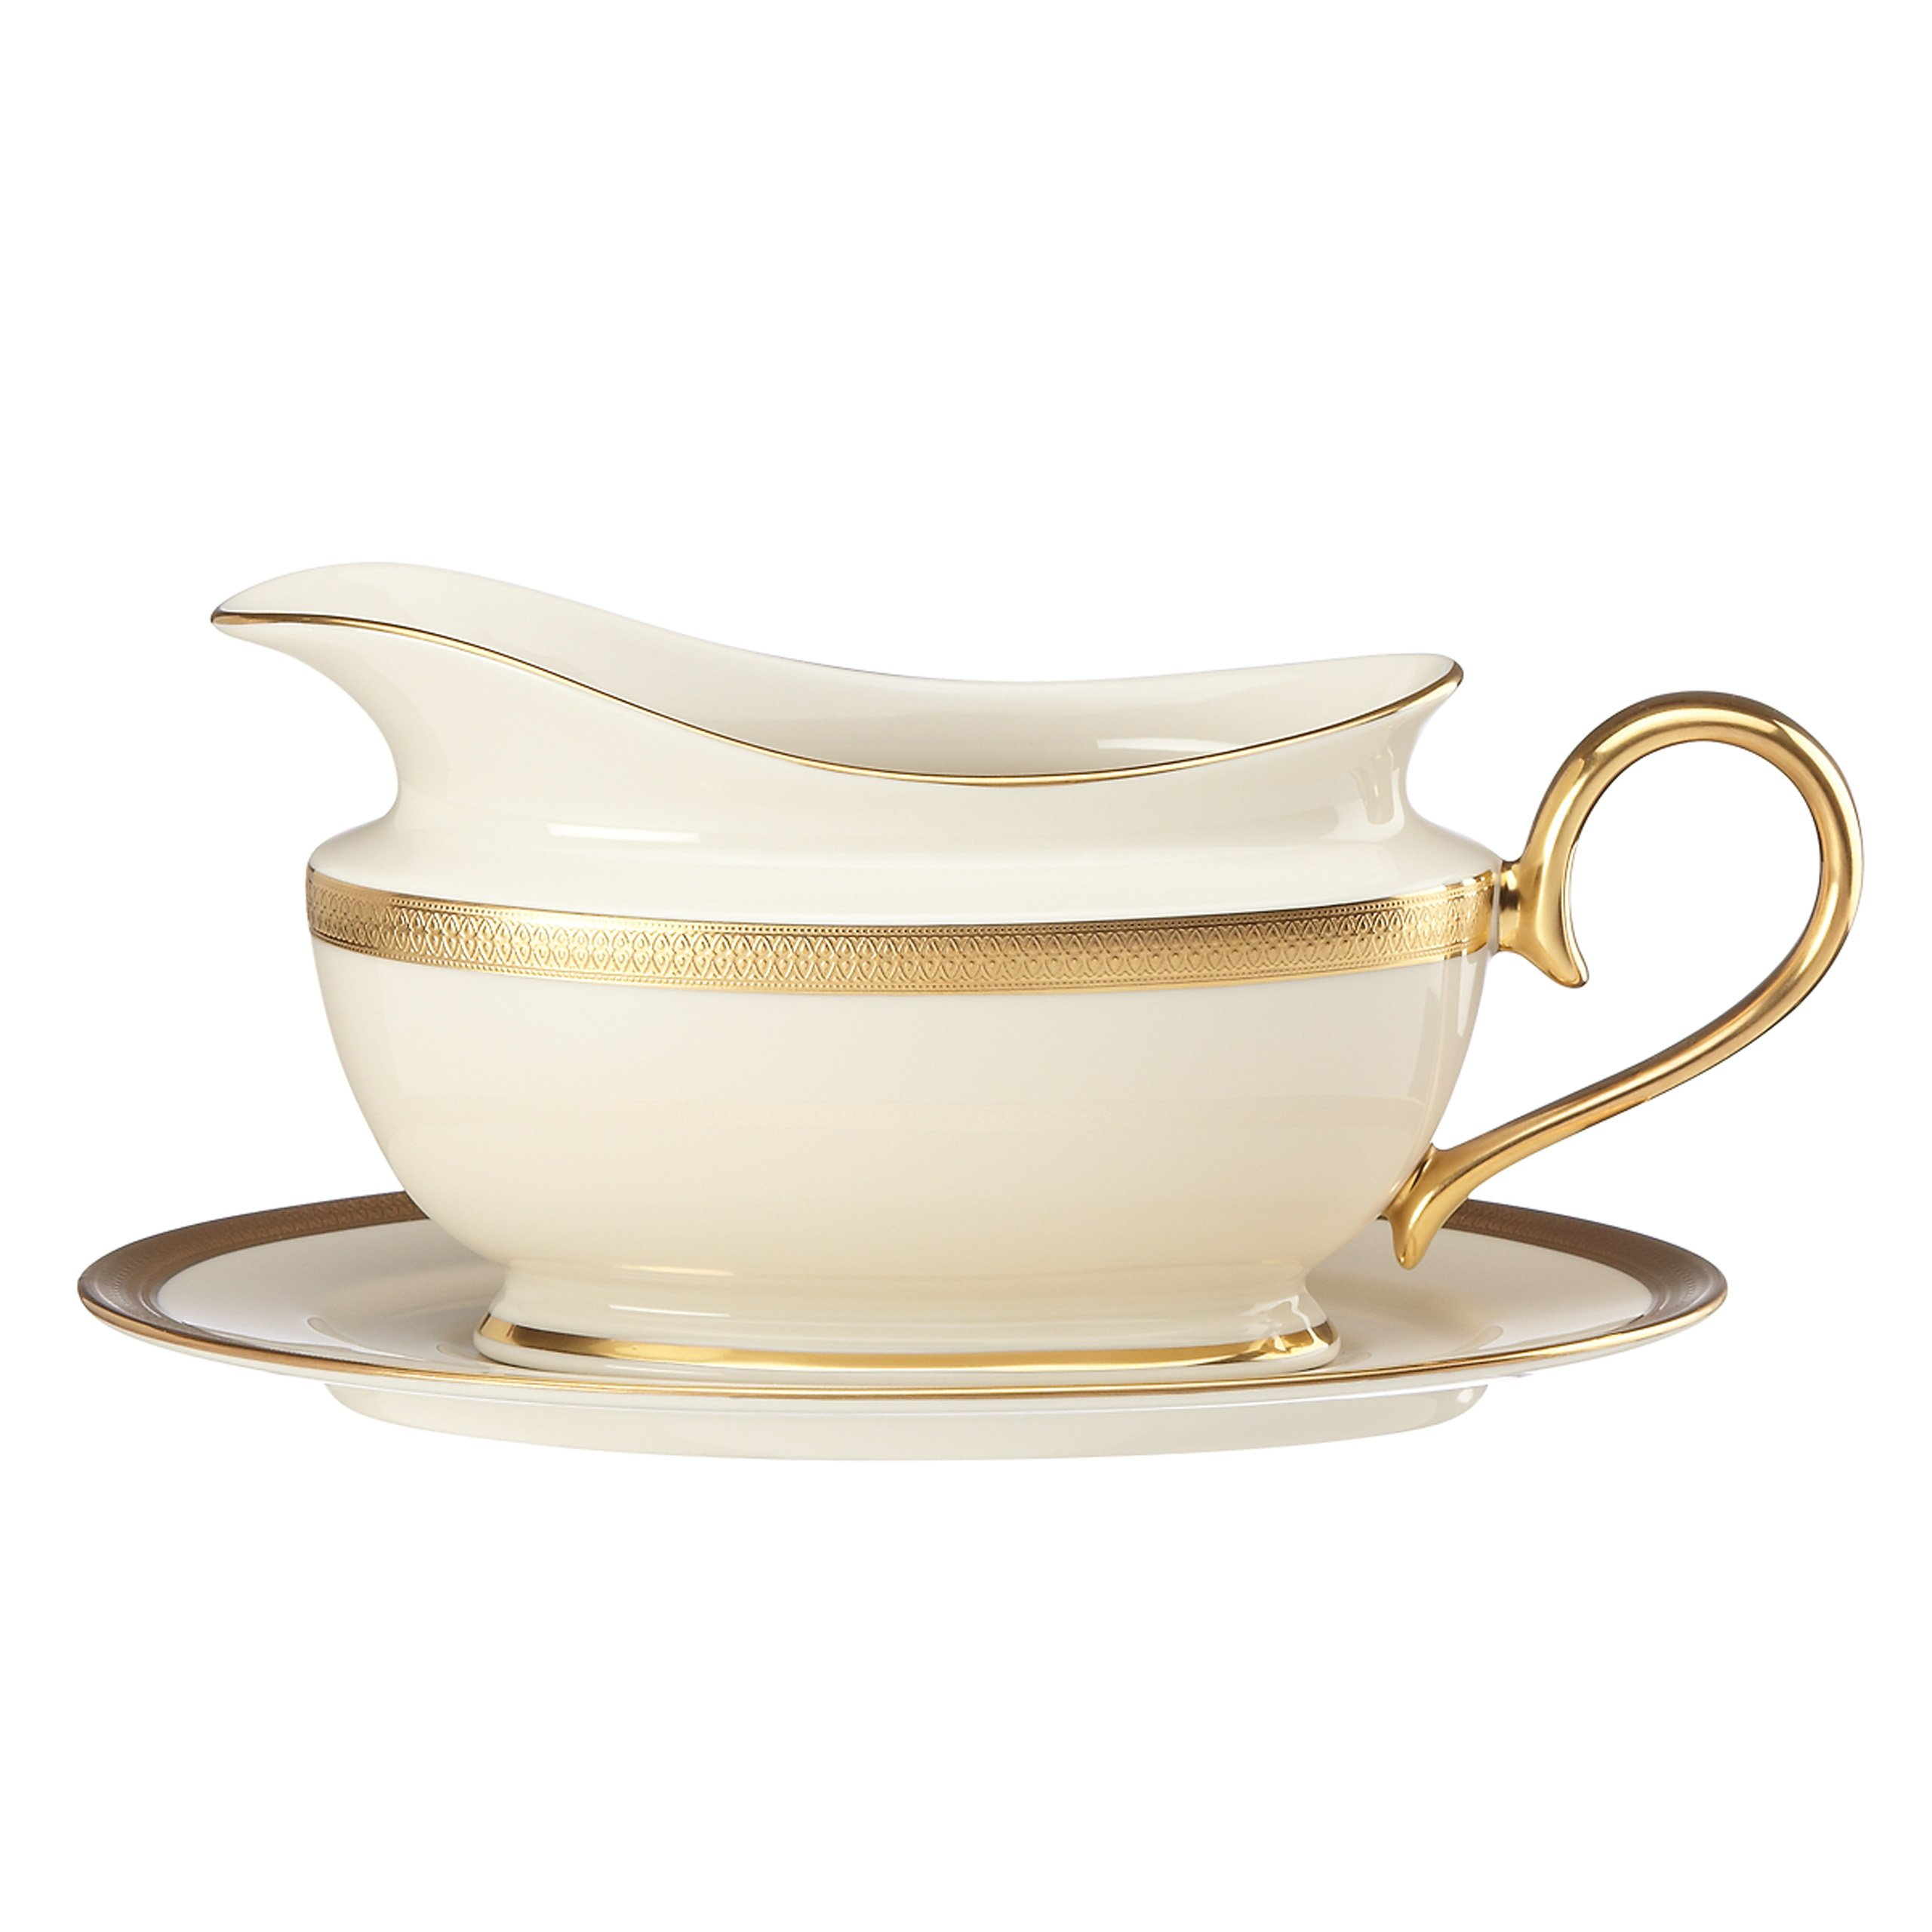 Lenox Lowell Sauce Boat and Stand, Ivory